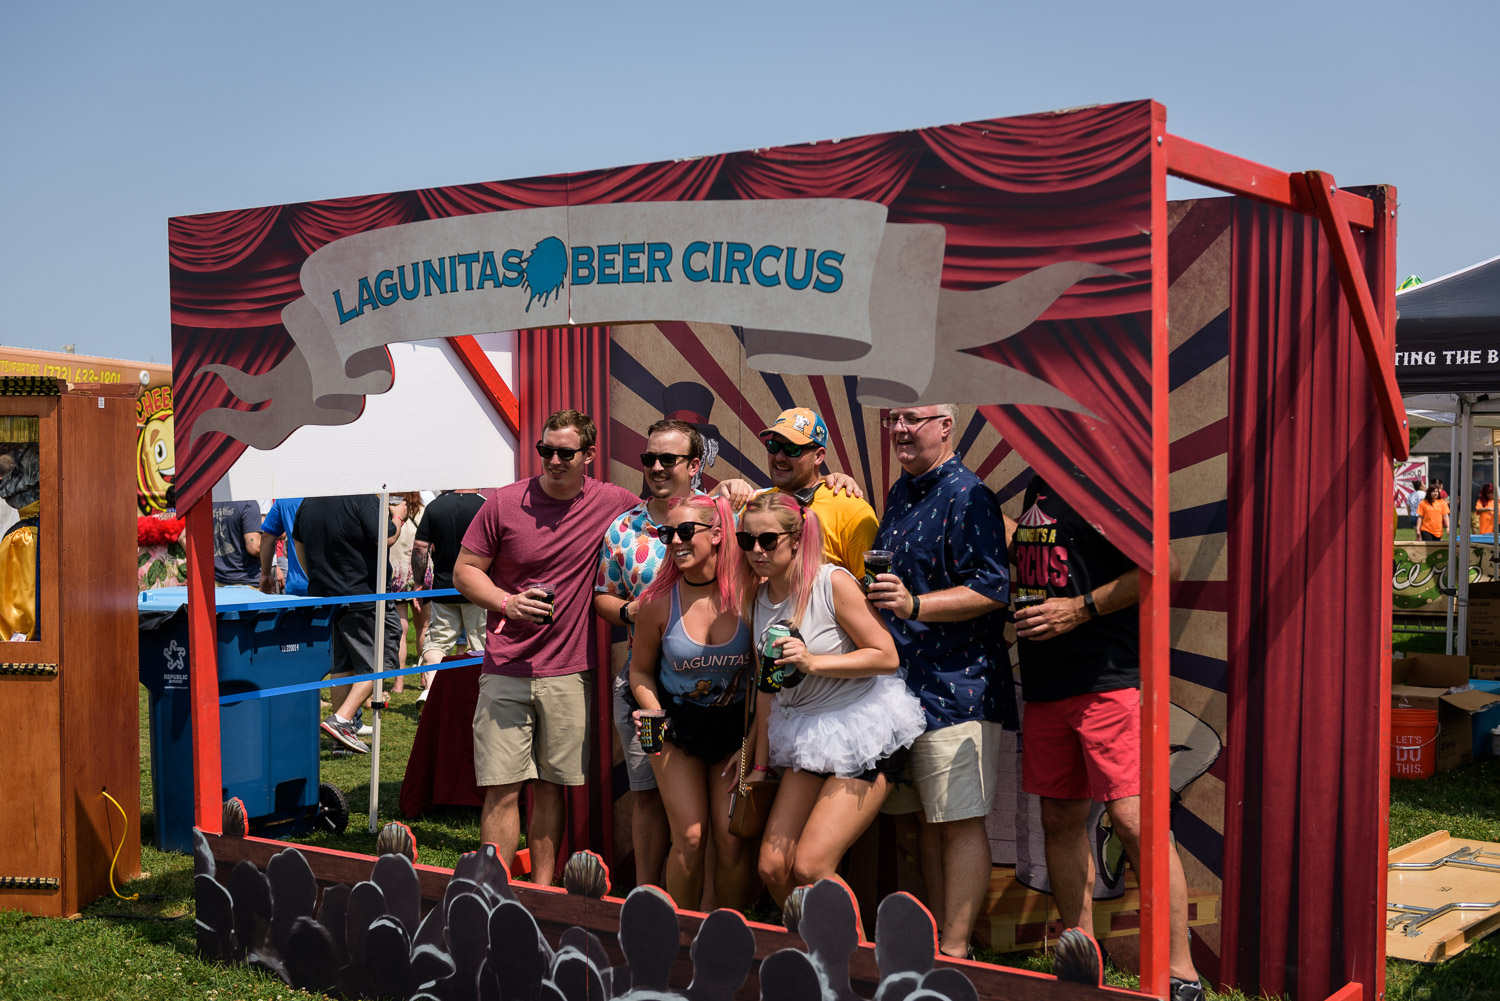 A Freaky Afternoon at the Lagunitas Beer Circus – Ross Feighery